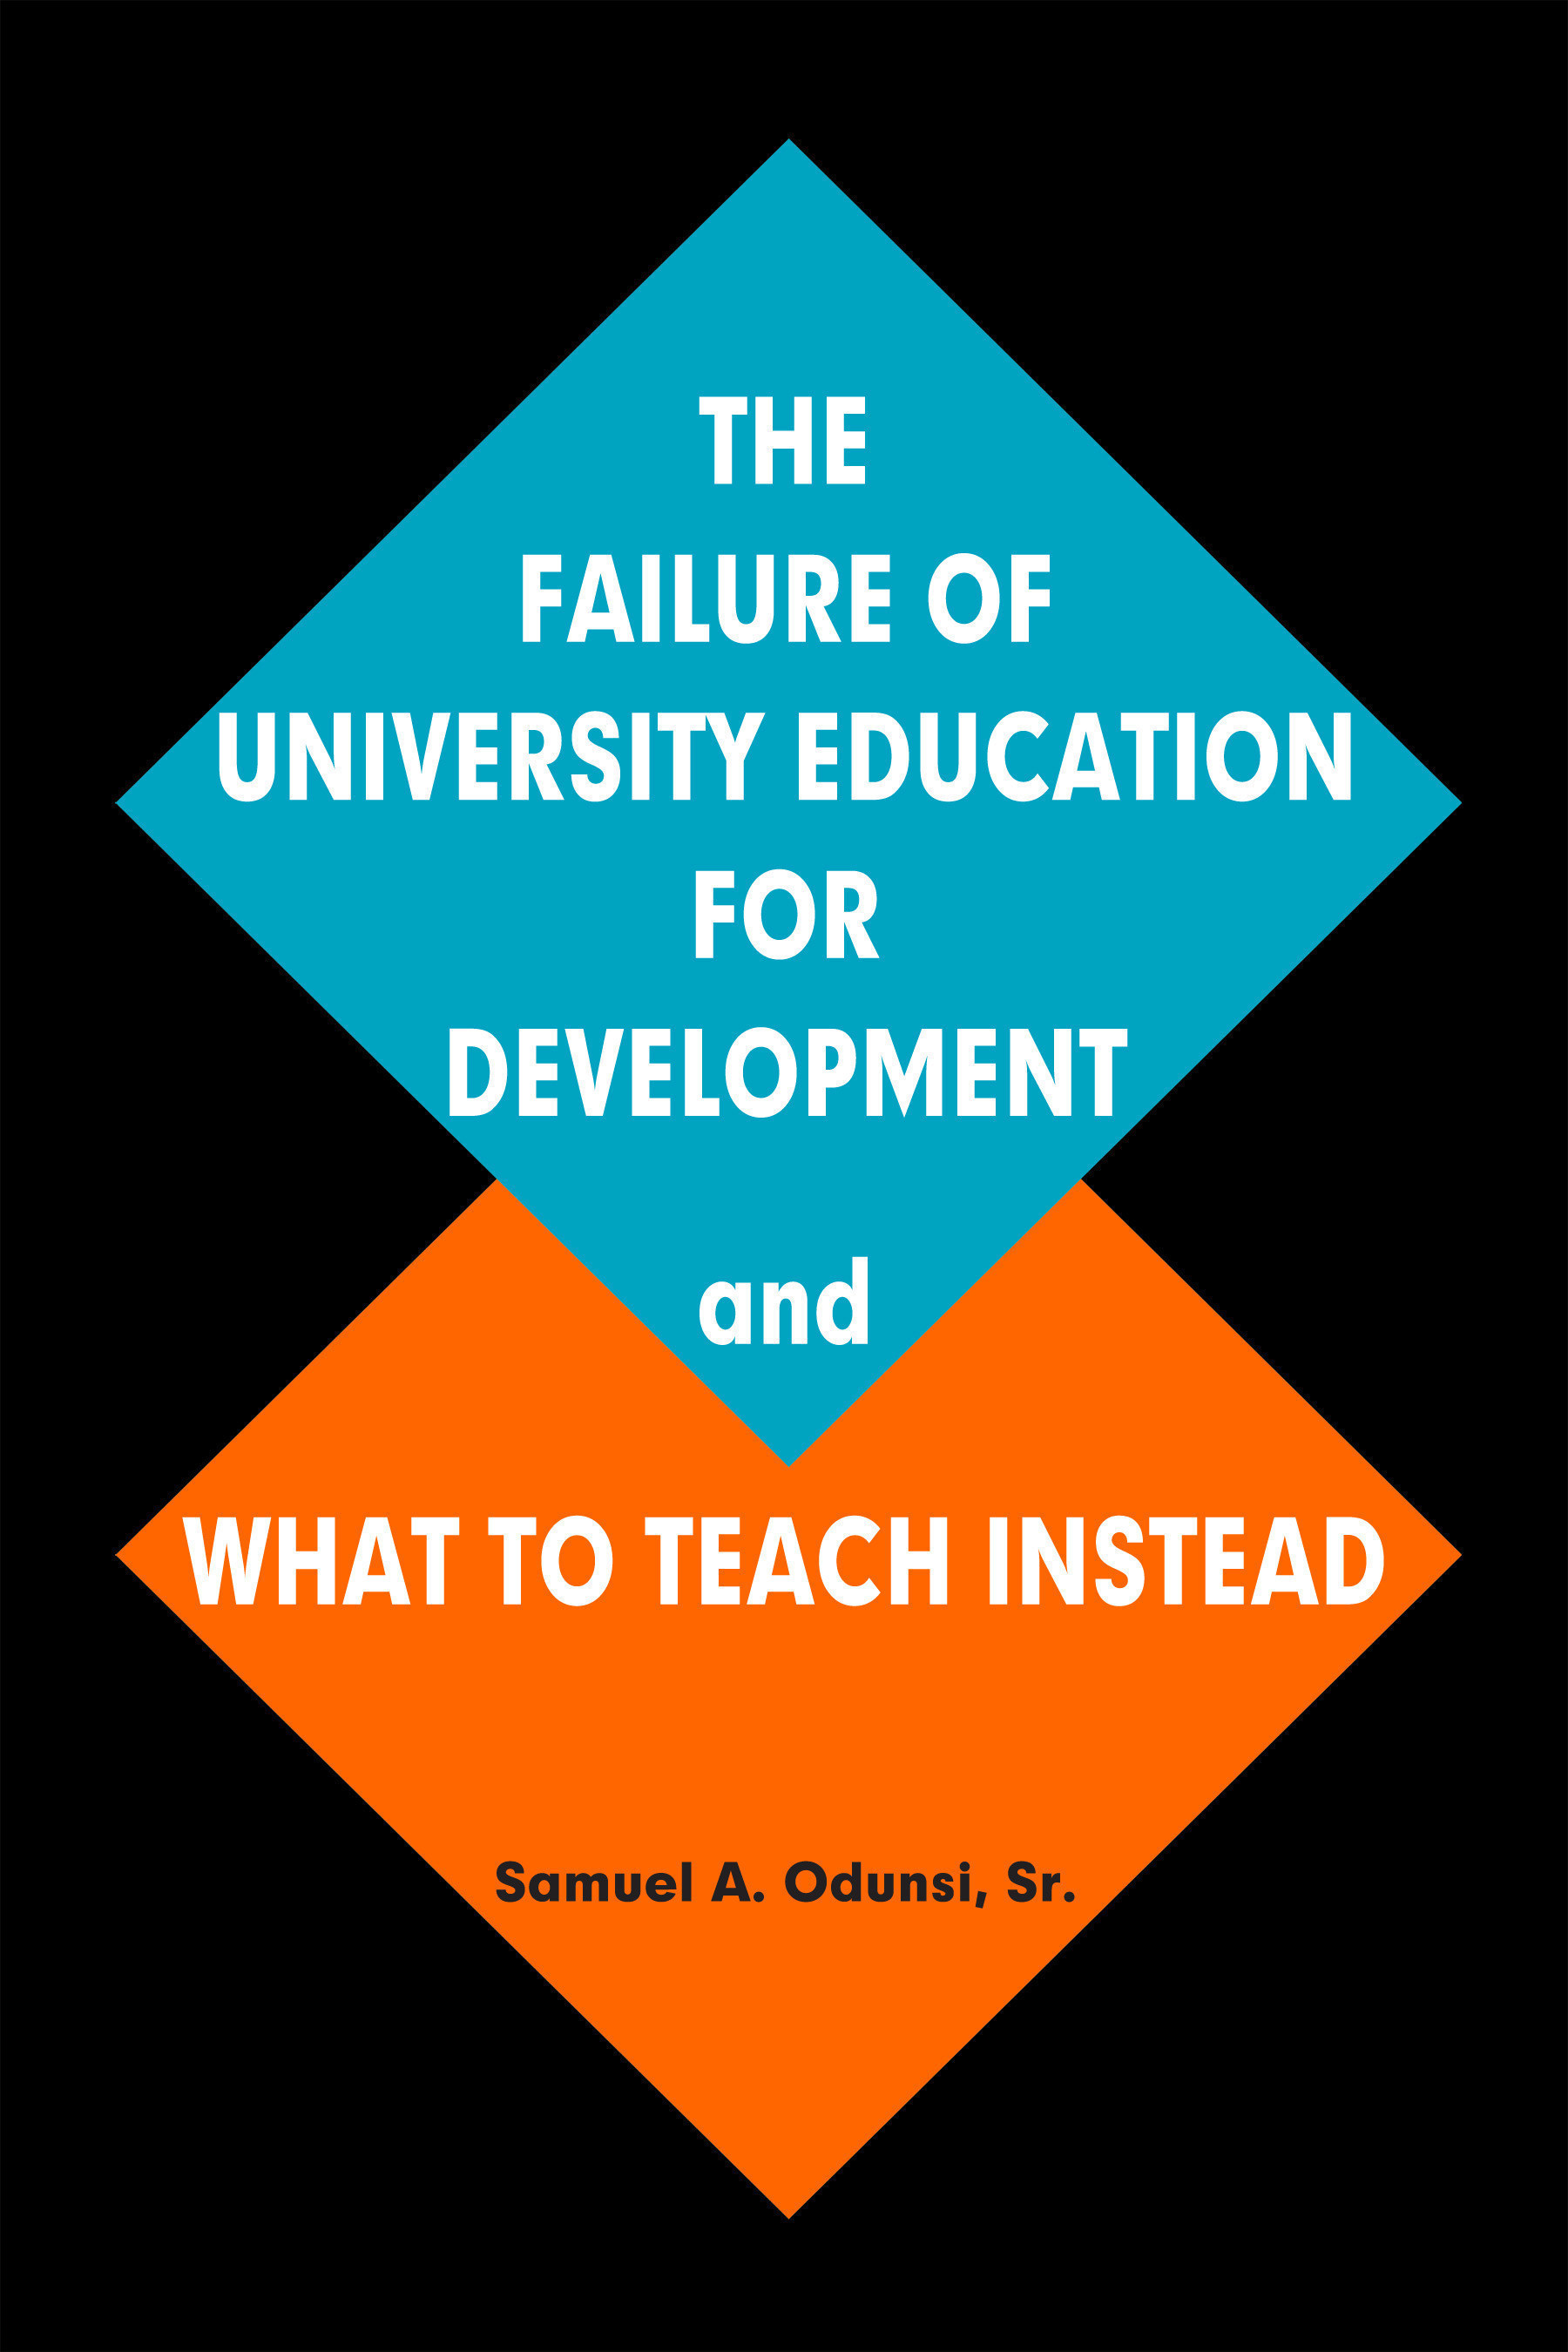 The Failure of University Education for Development and What to Teach InsteadBy Samuel A. Odunsi, Sr.